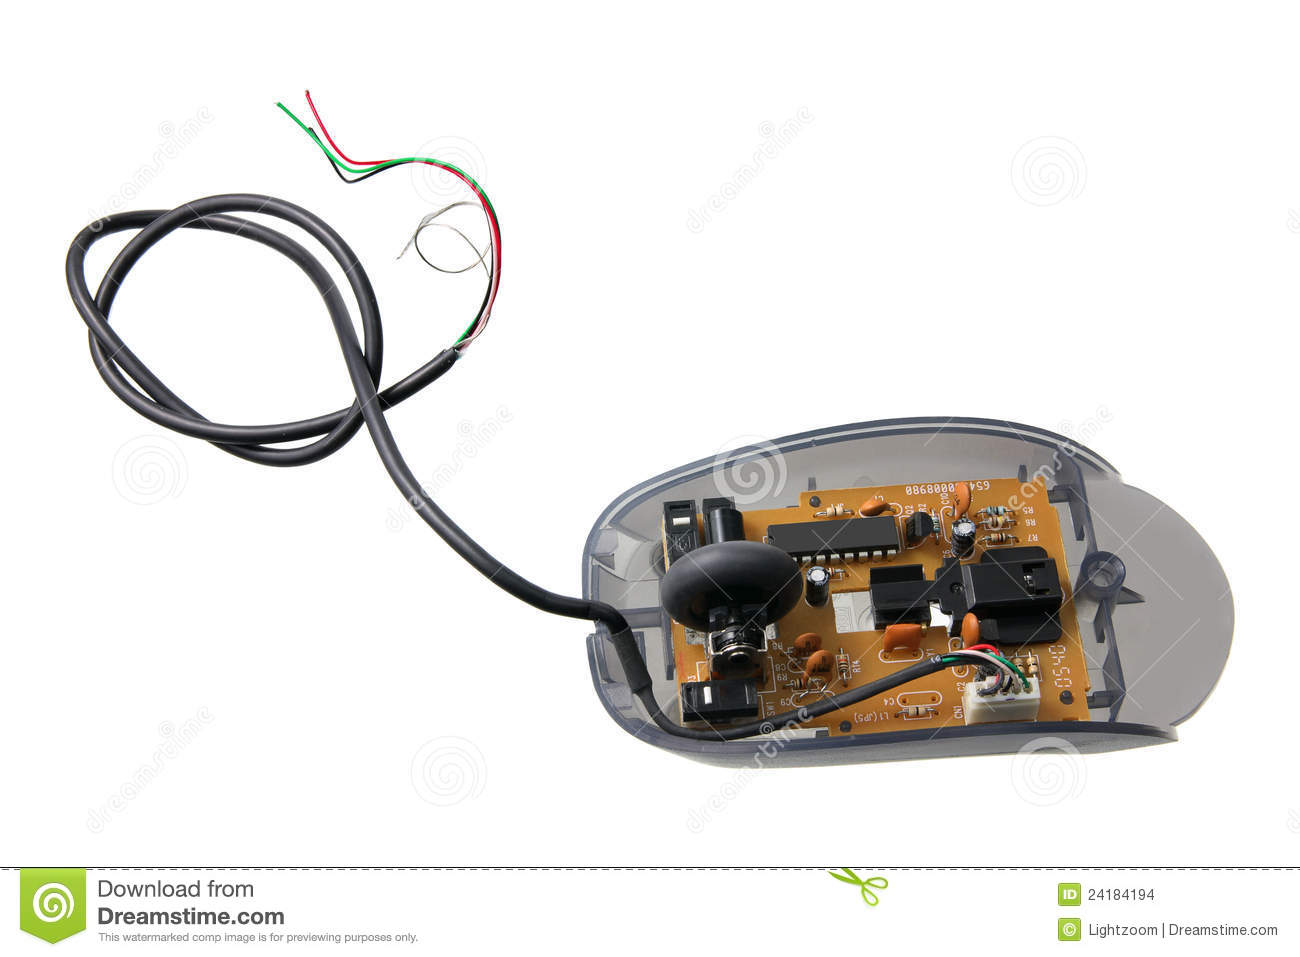 hight resolution of wiring pc mouse wiring diagram used wiring pc mouse